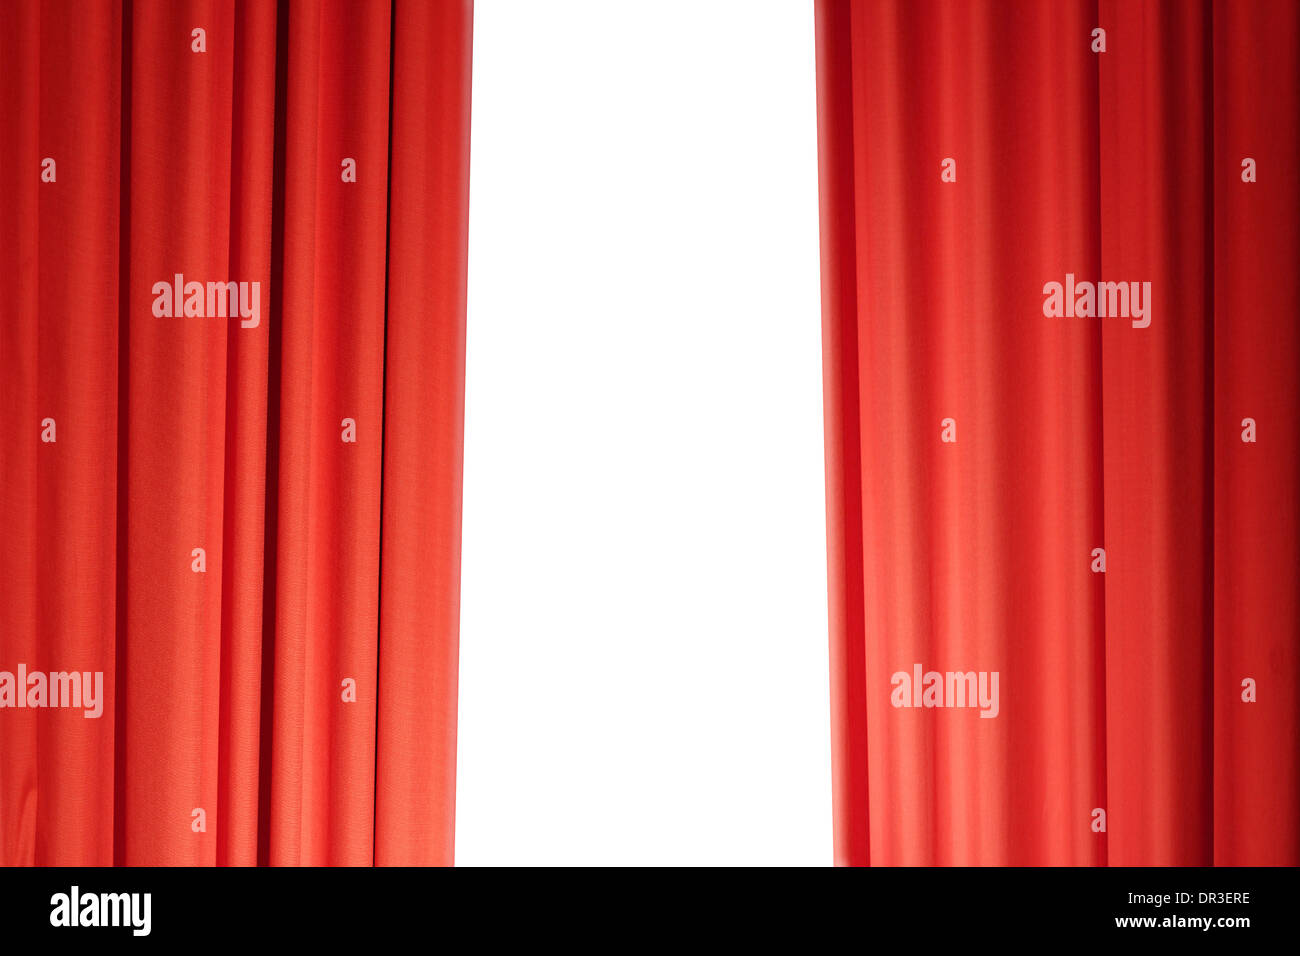 Red Theater Curtain - Stock Image